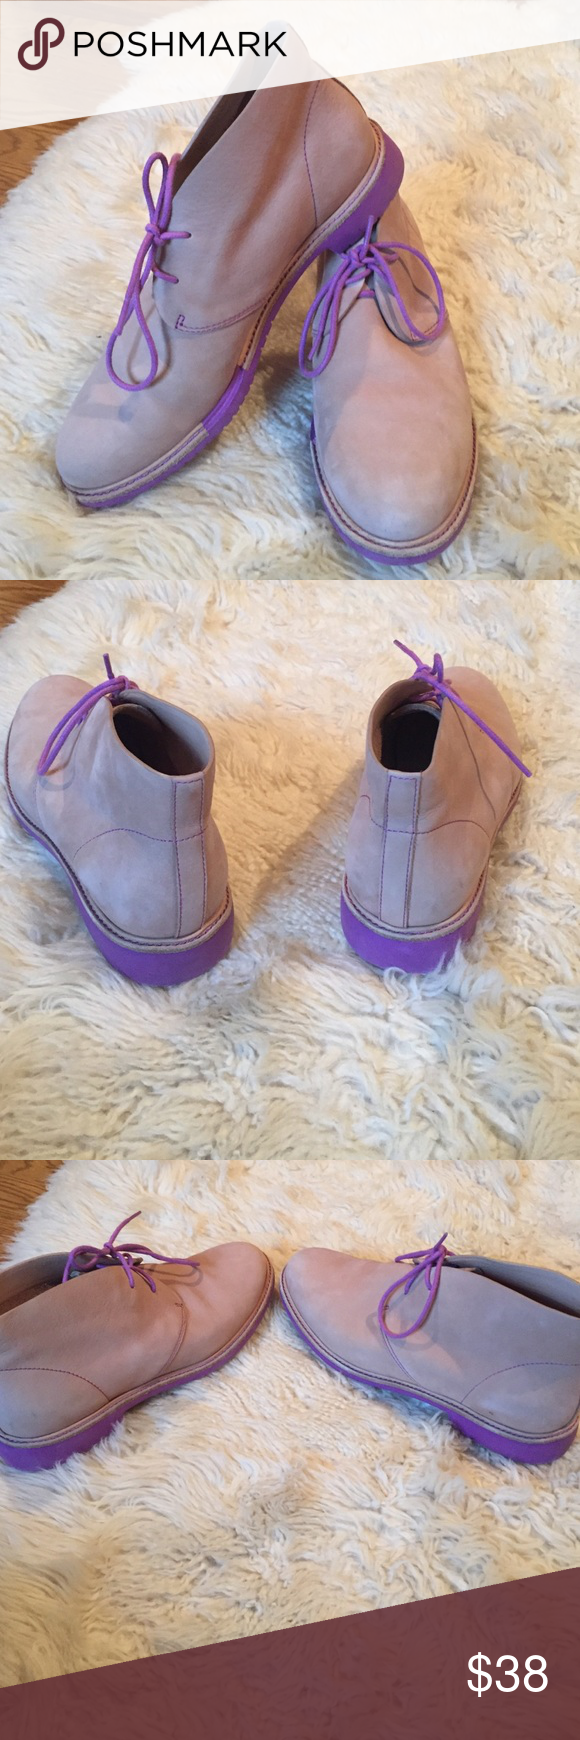 Cole Haan Desert Boots Purple sole, stitching, and laces. Good condition. Some marks on the heel of shoe. Cole Haan Shoes Ankle Boots & Booties